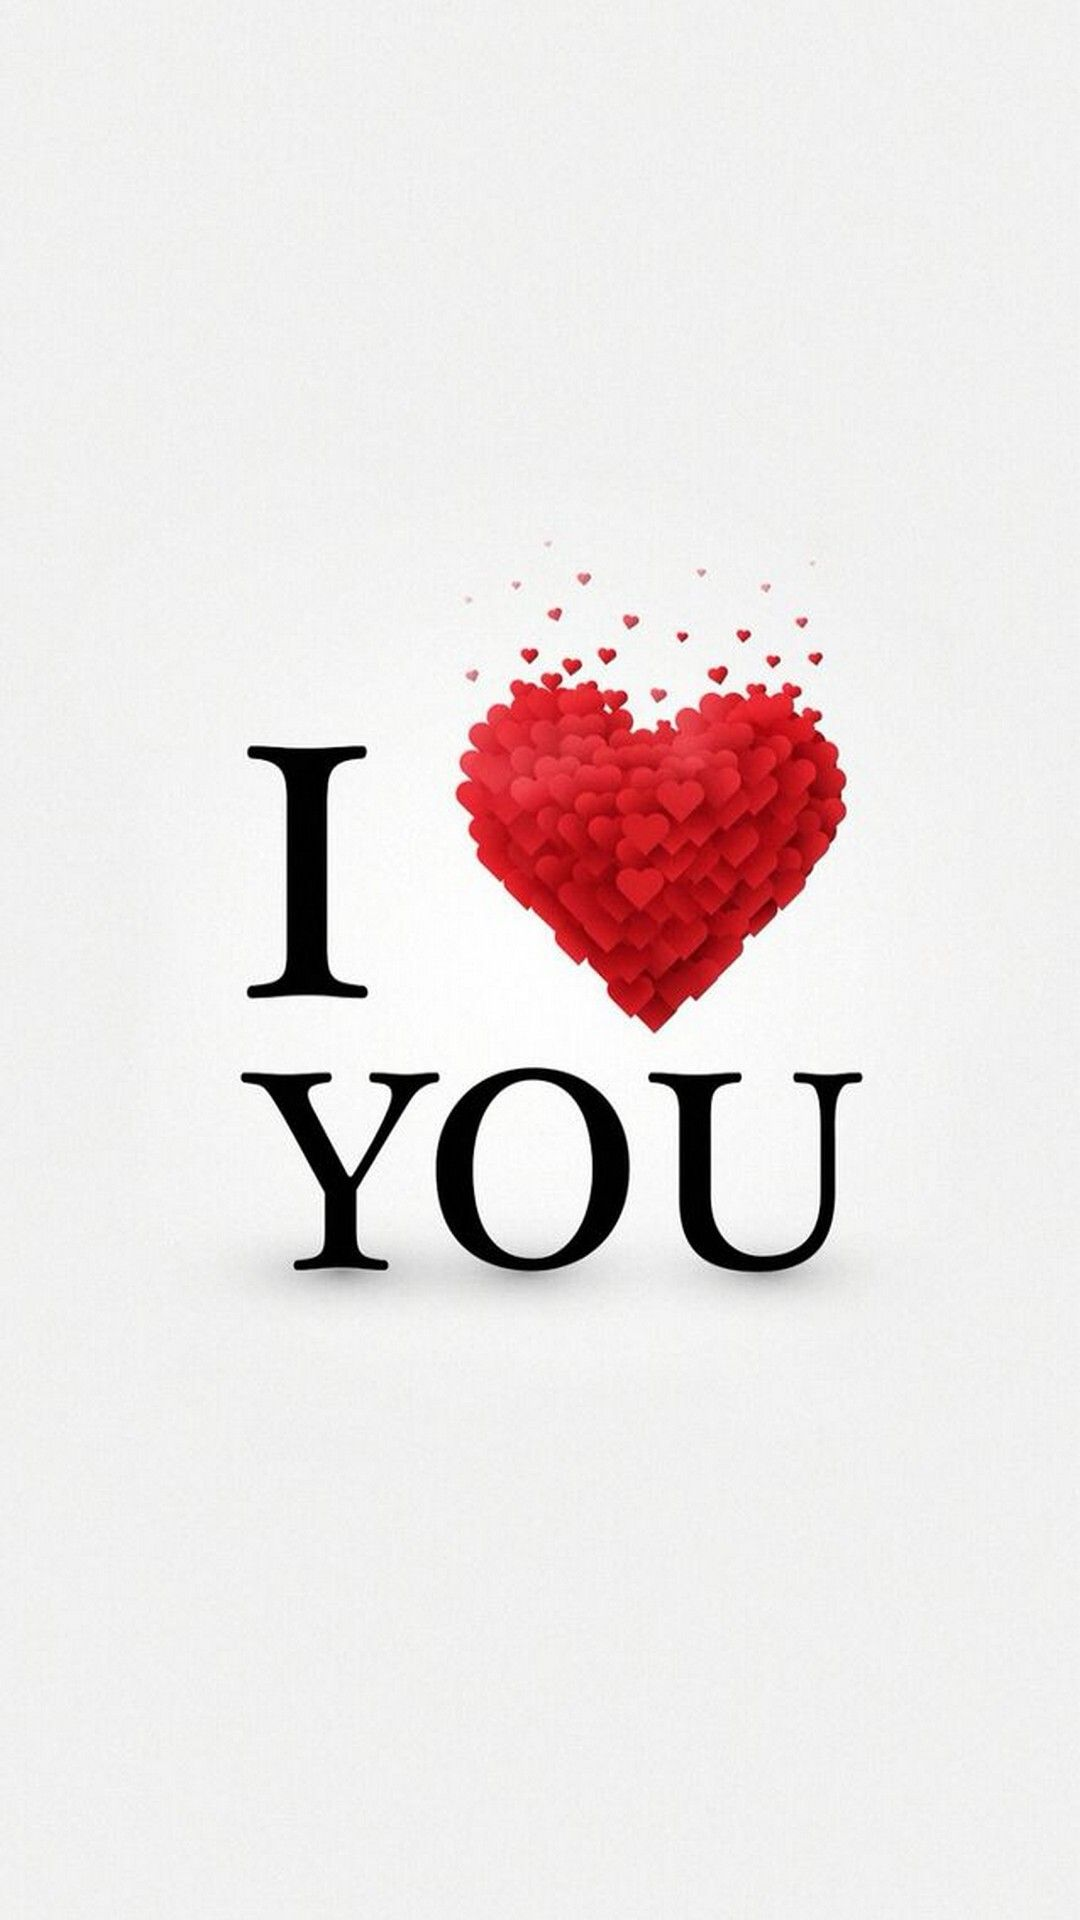 Valentine I Love You Wallpaper - Best iPhone Wallpaper